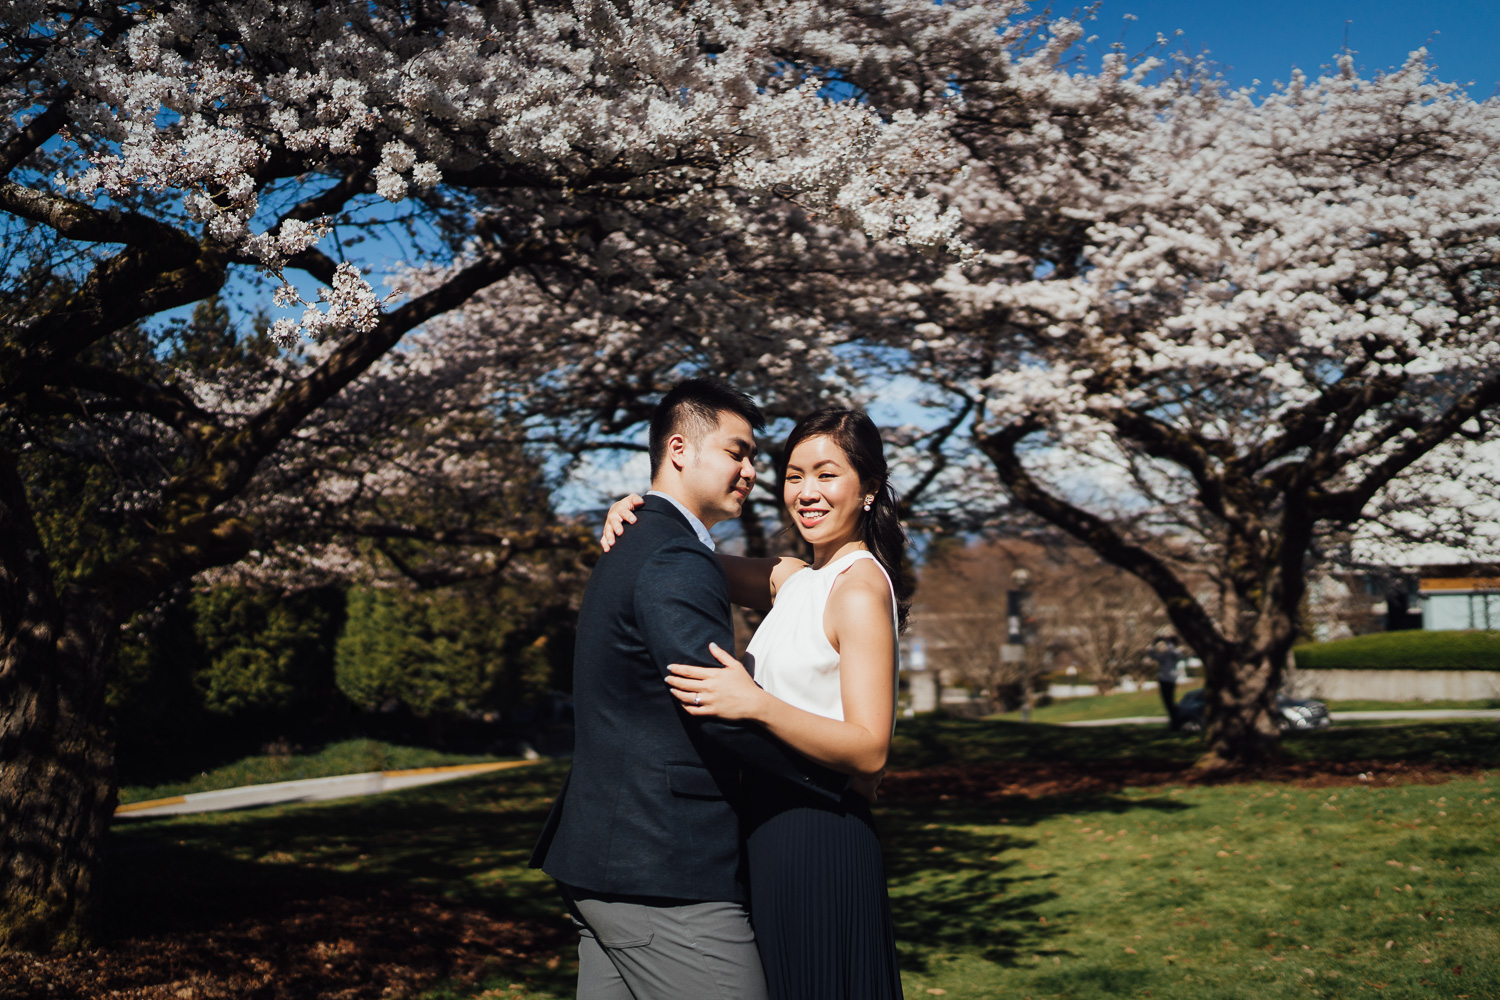 vancouver engagement photography during cherry blossom season at UBC